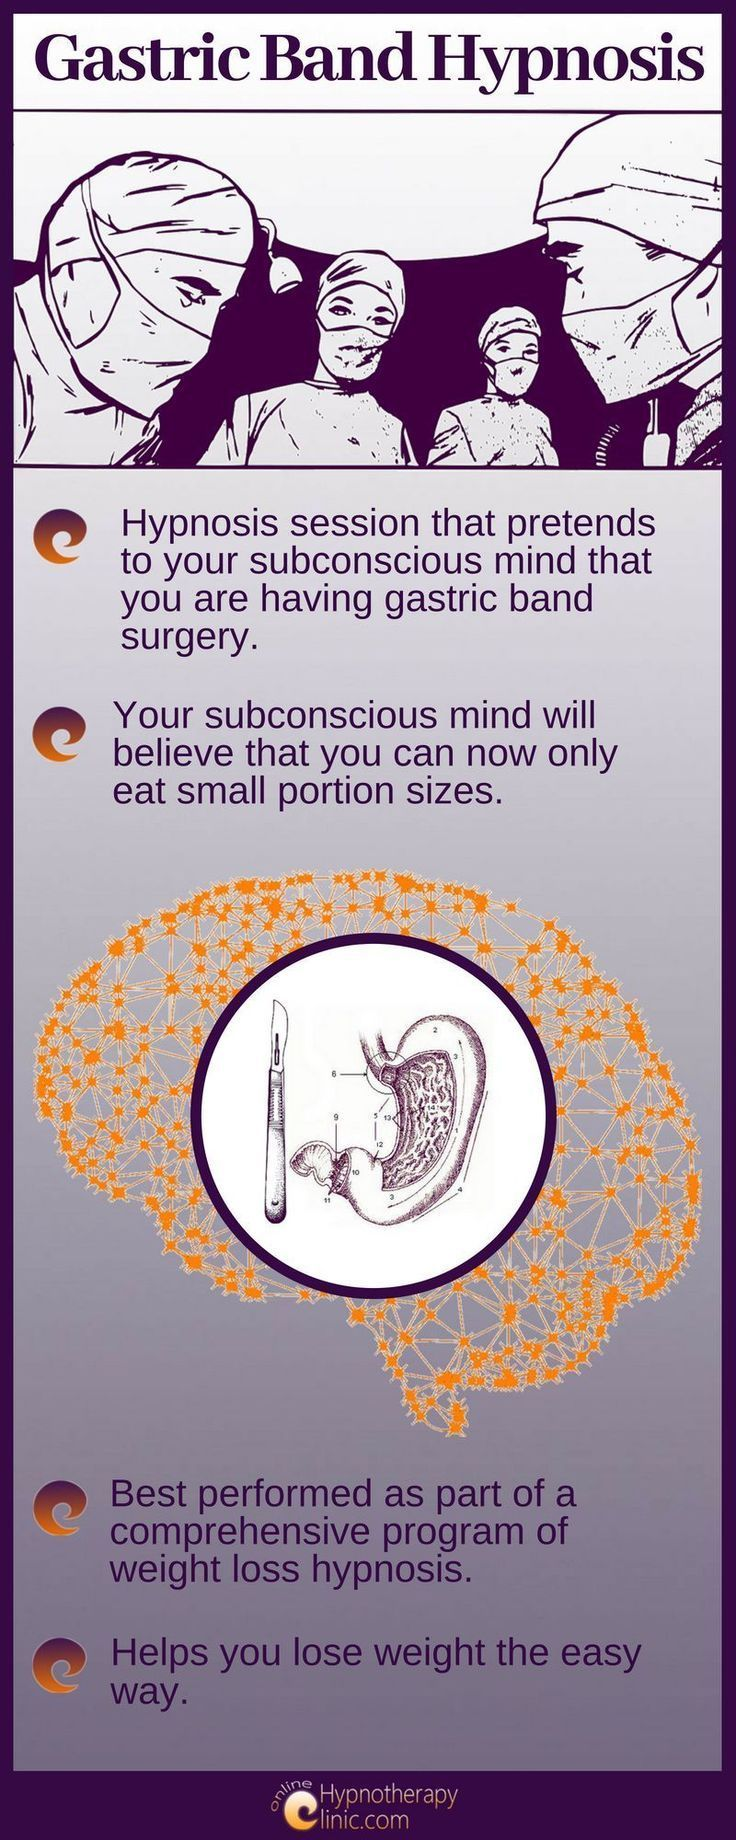 Band Hypnosis- Everything you Want to Know Are you considering hypnosis for weight loss? In this article, find out everything you want to know about gastric band hypnosis including what clients say and how to get the best out of your treatment.Are you considering hypnosis for weight loss? In this article, find ...